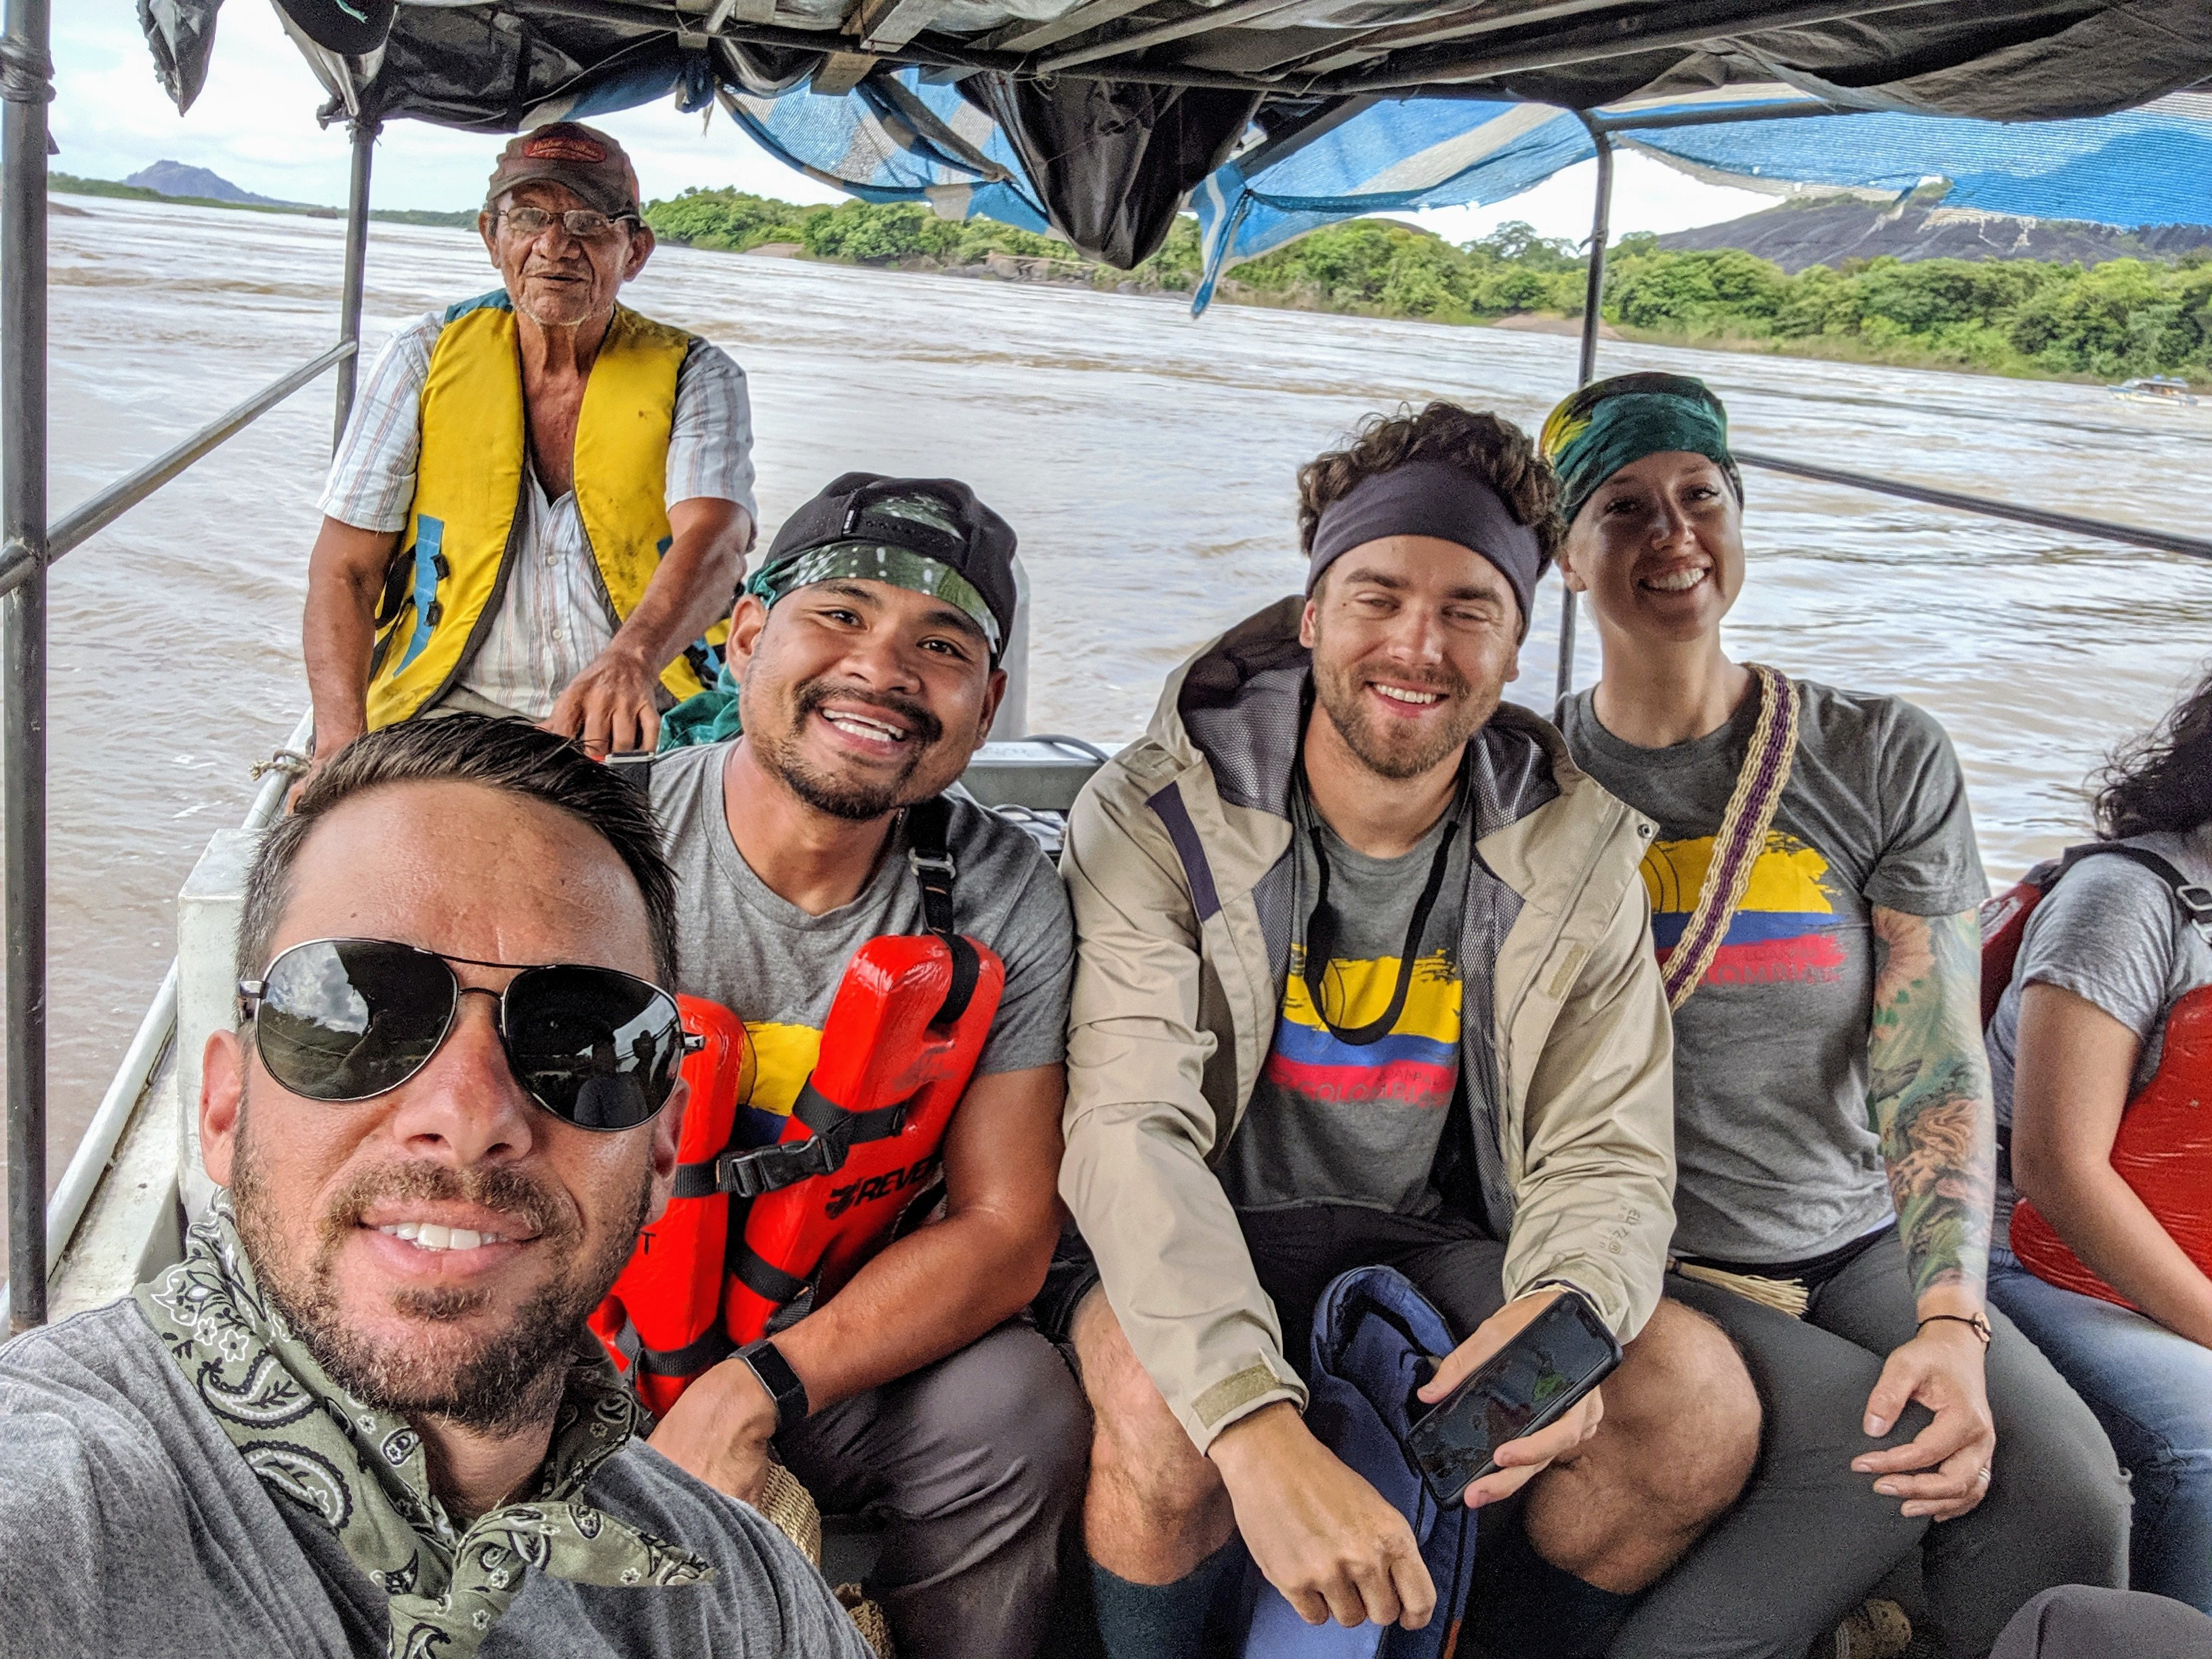 a group of people in a boat on a river in colombia